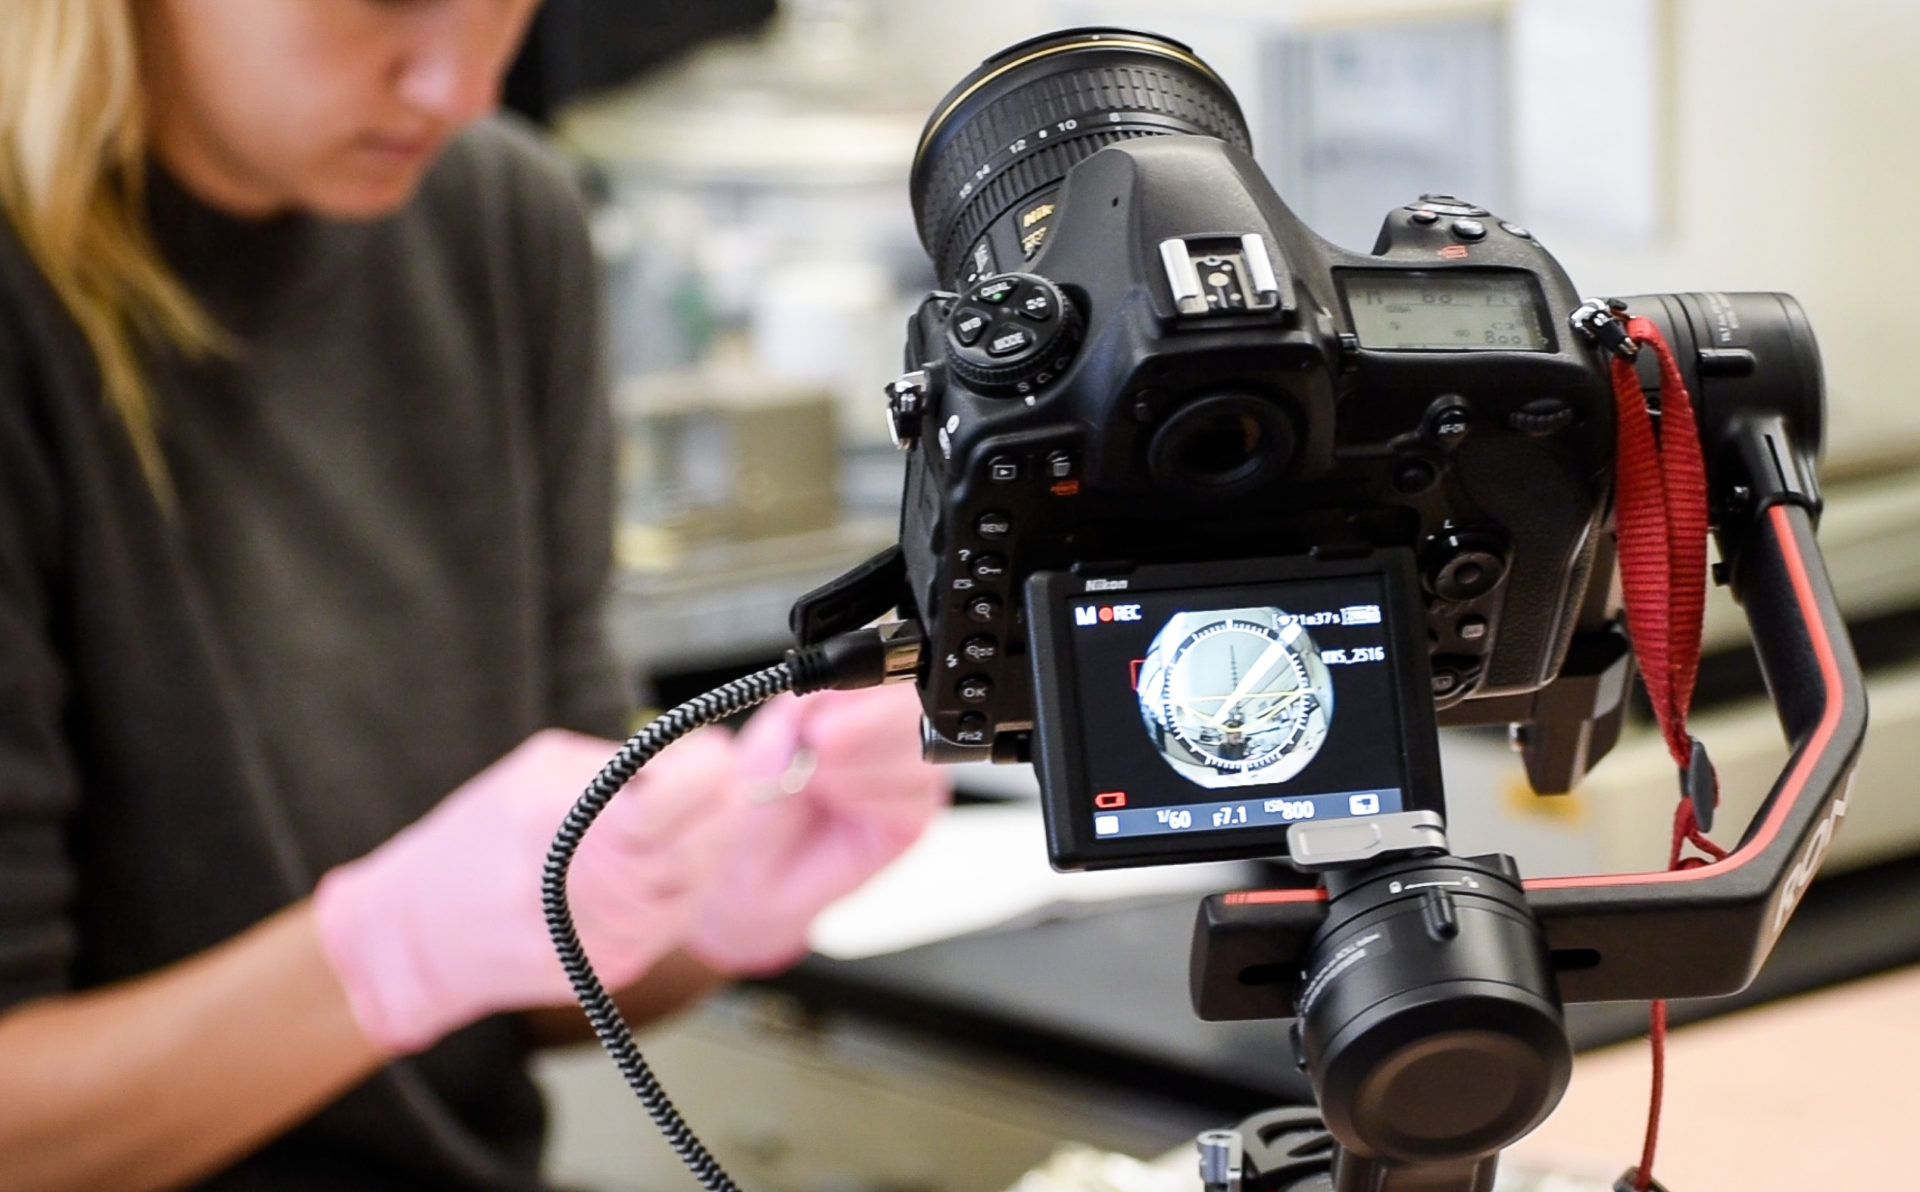 A camera with a wide angle lens filming a scientist